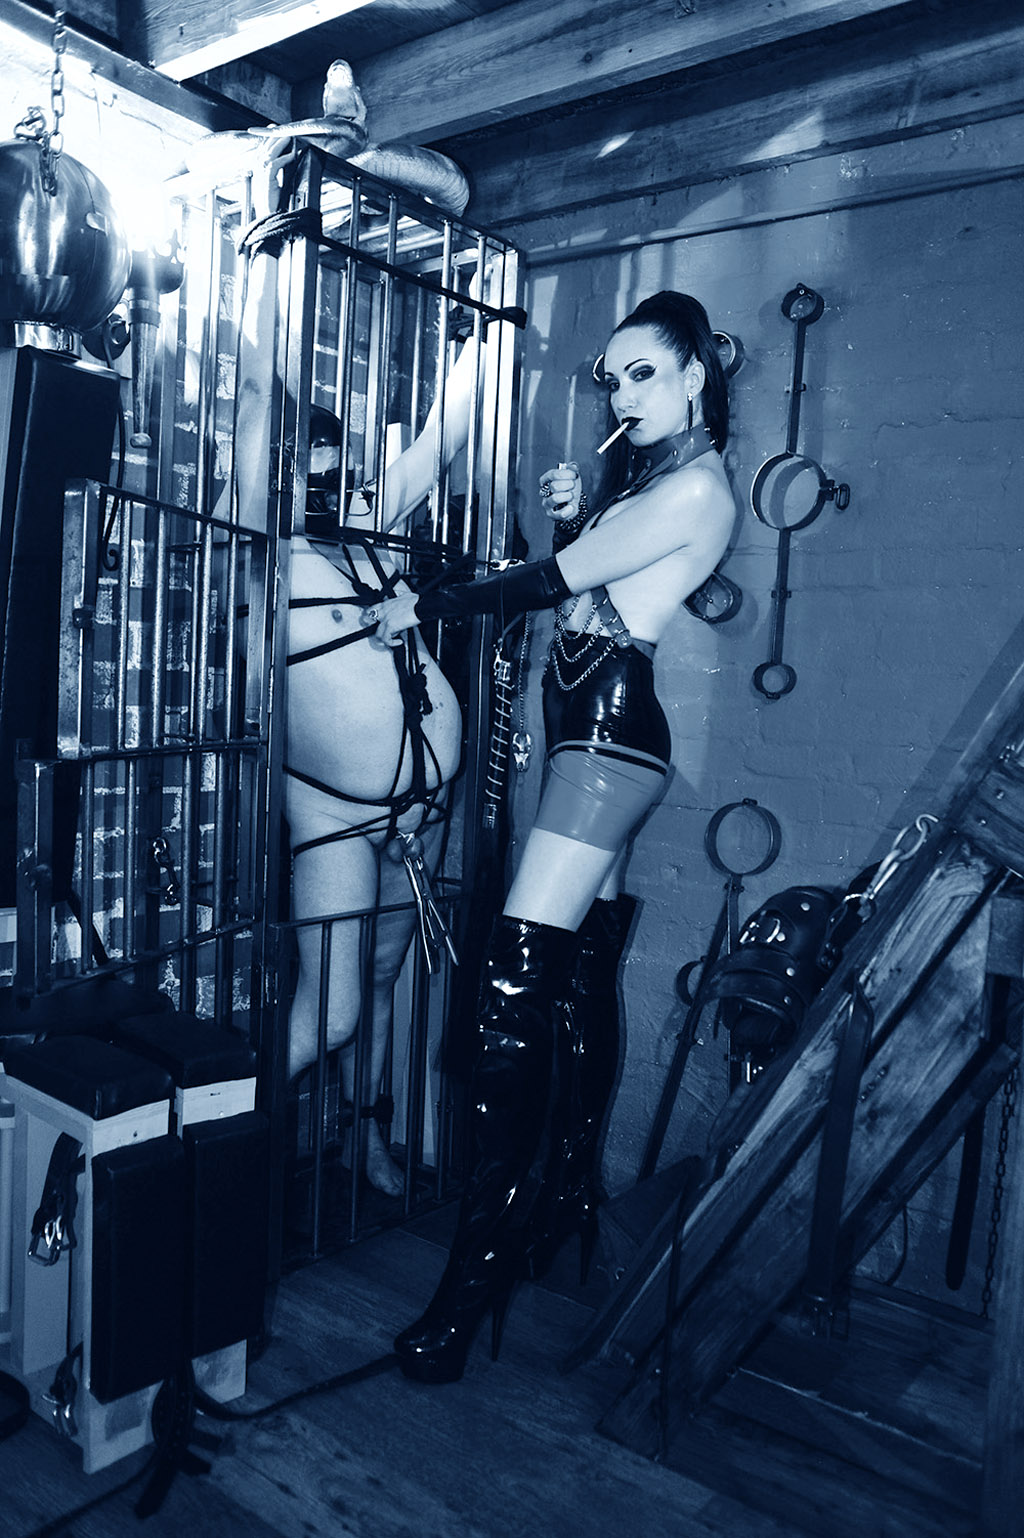 Bdsm fun with tits suction